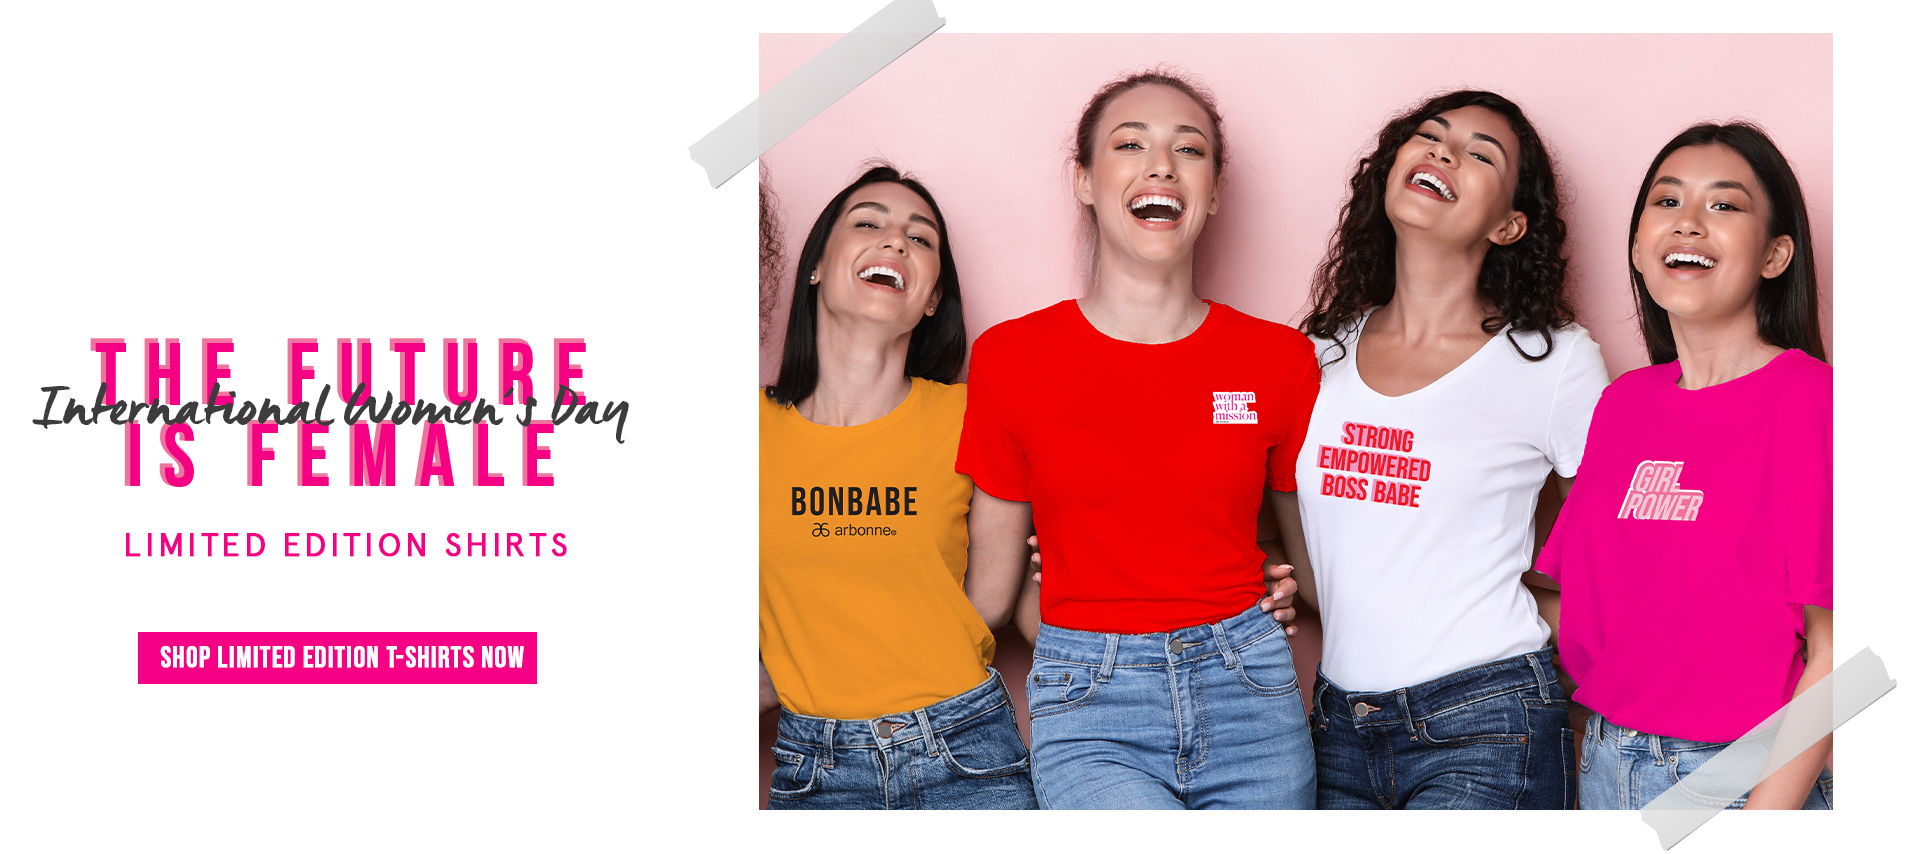 International women's day shirts